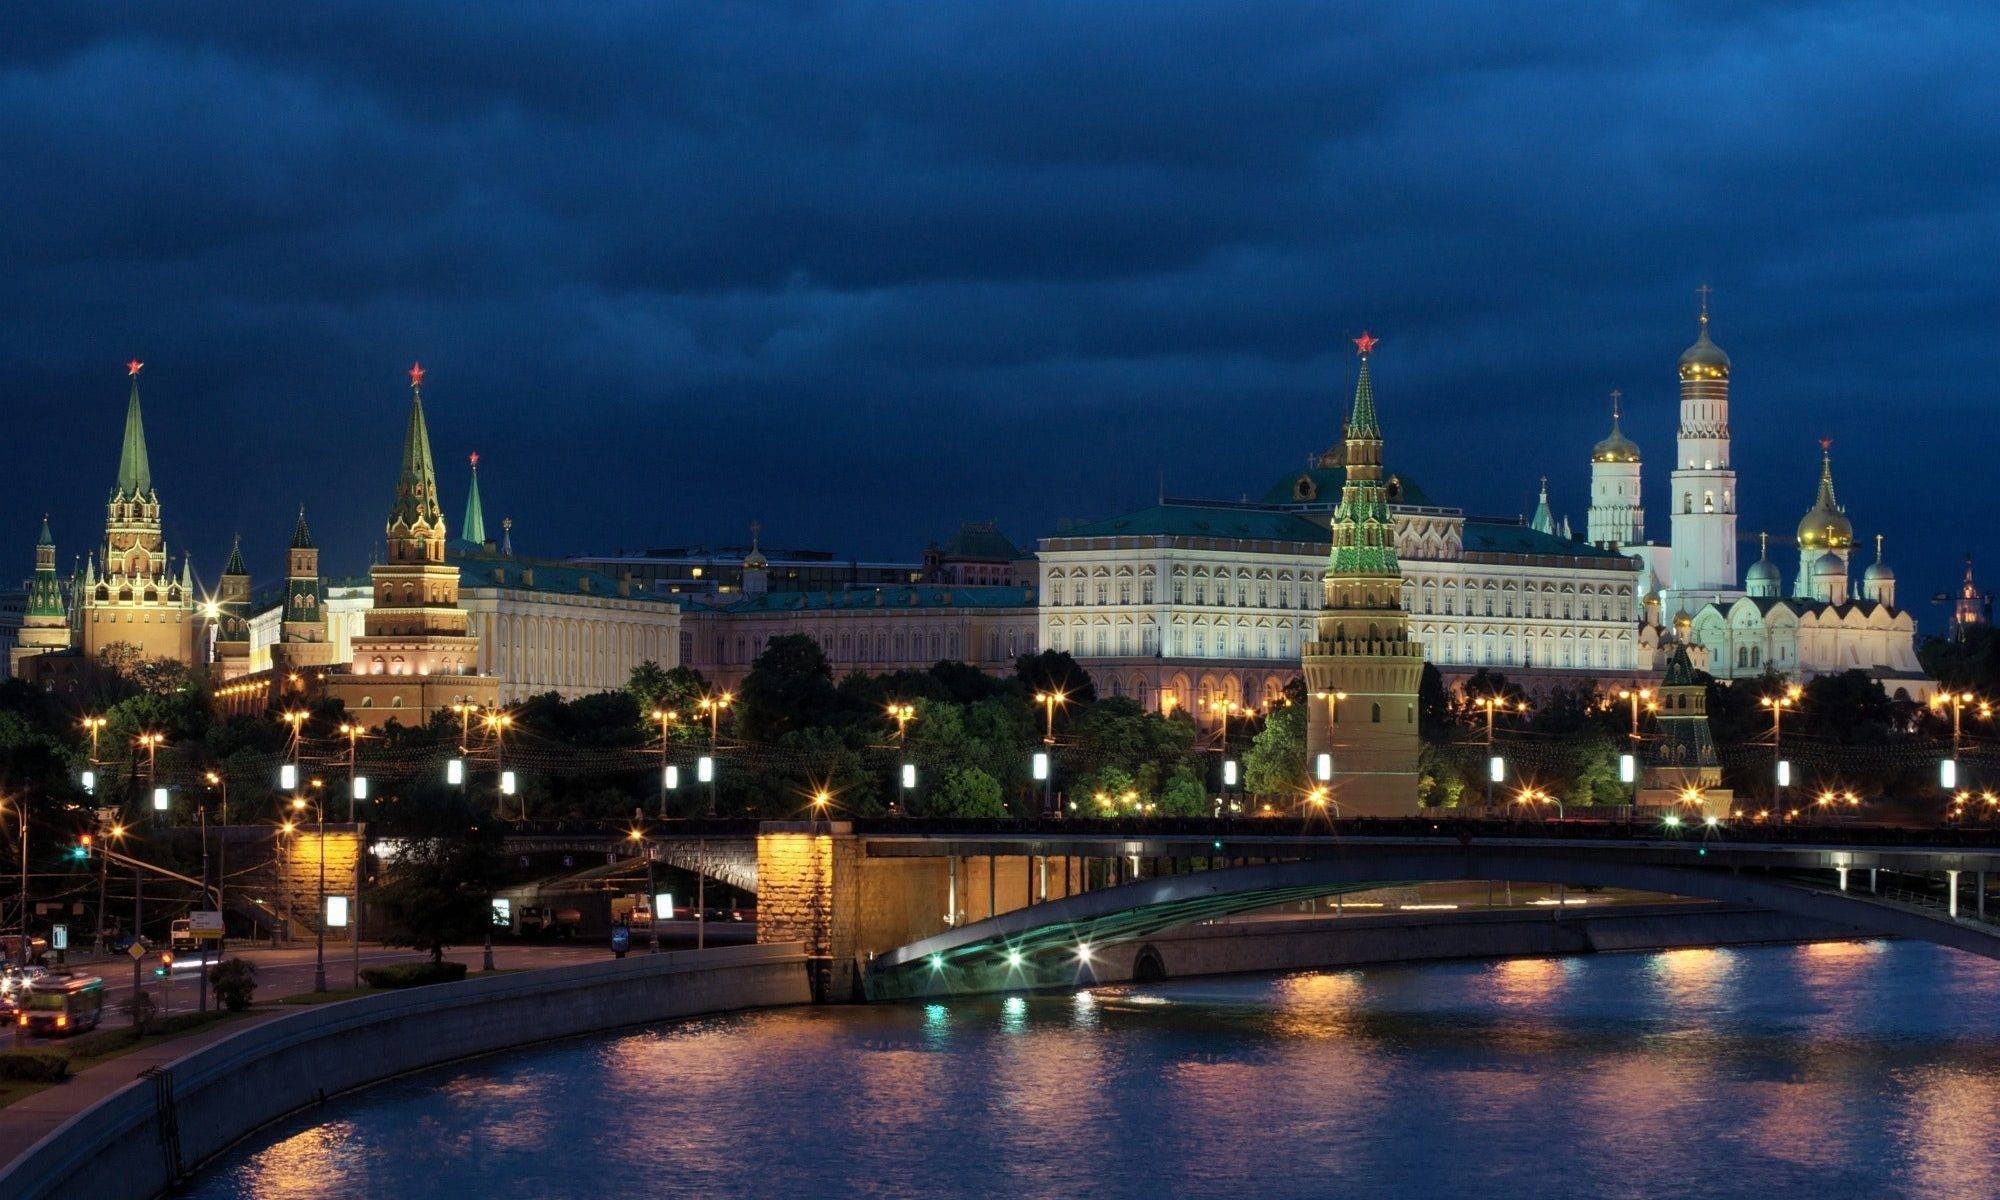 Live Stand locations in Moscow, Kremlin backdrop